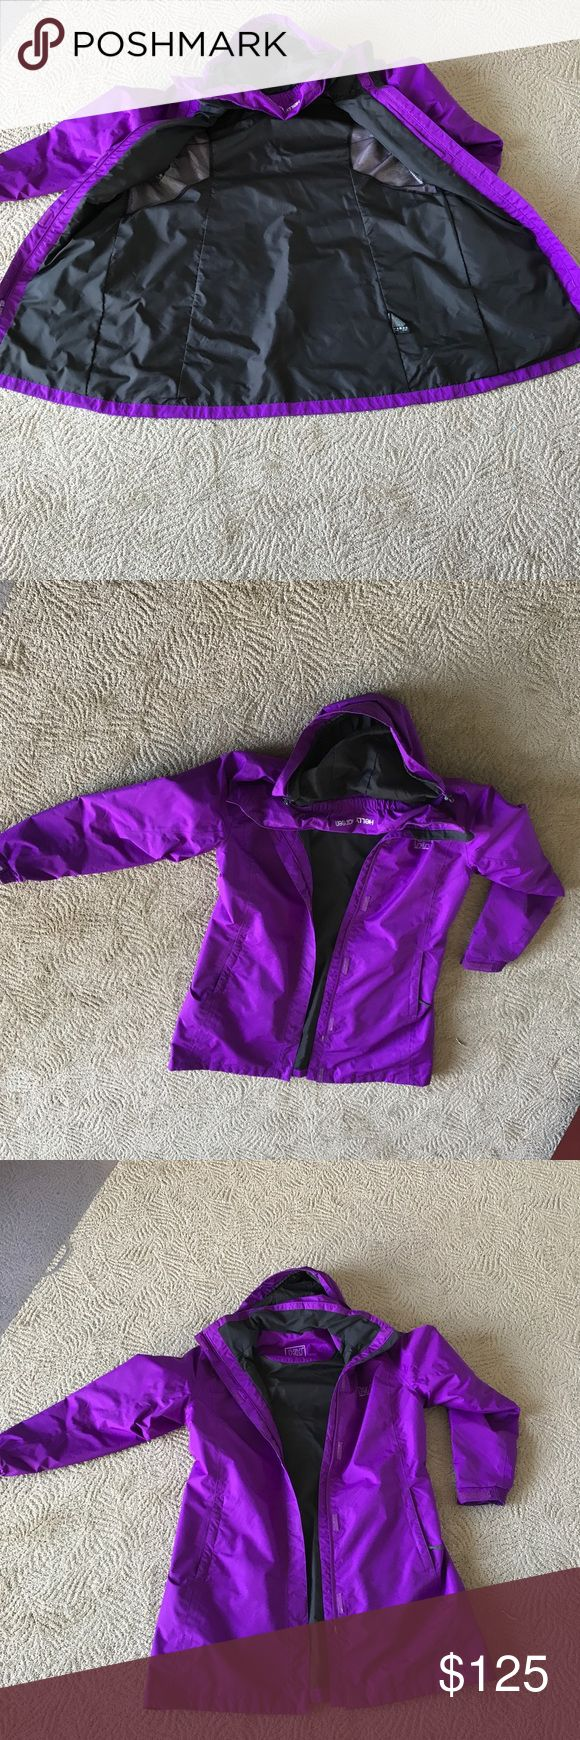 Helly Hansen Purple Coat Excellent Condition. Worn a few times. Size XL   Has hood that rolls into attached hood sleeve. Helly Hansen Jackets & Coats